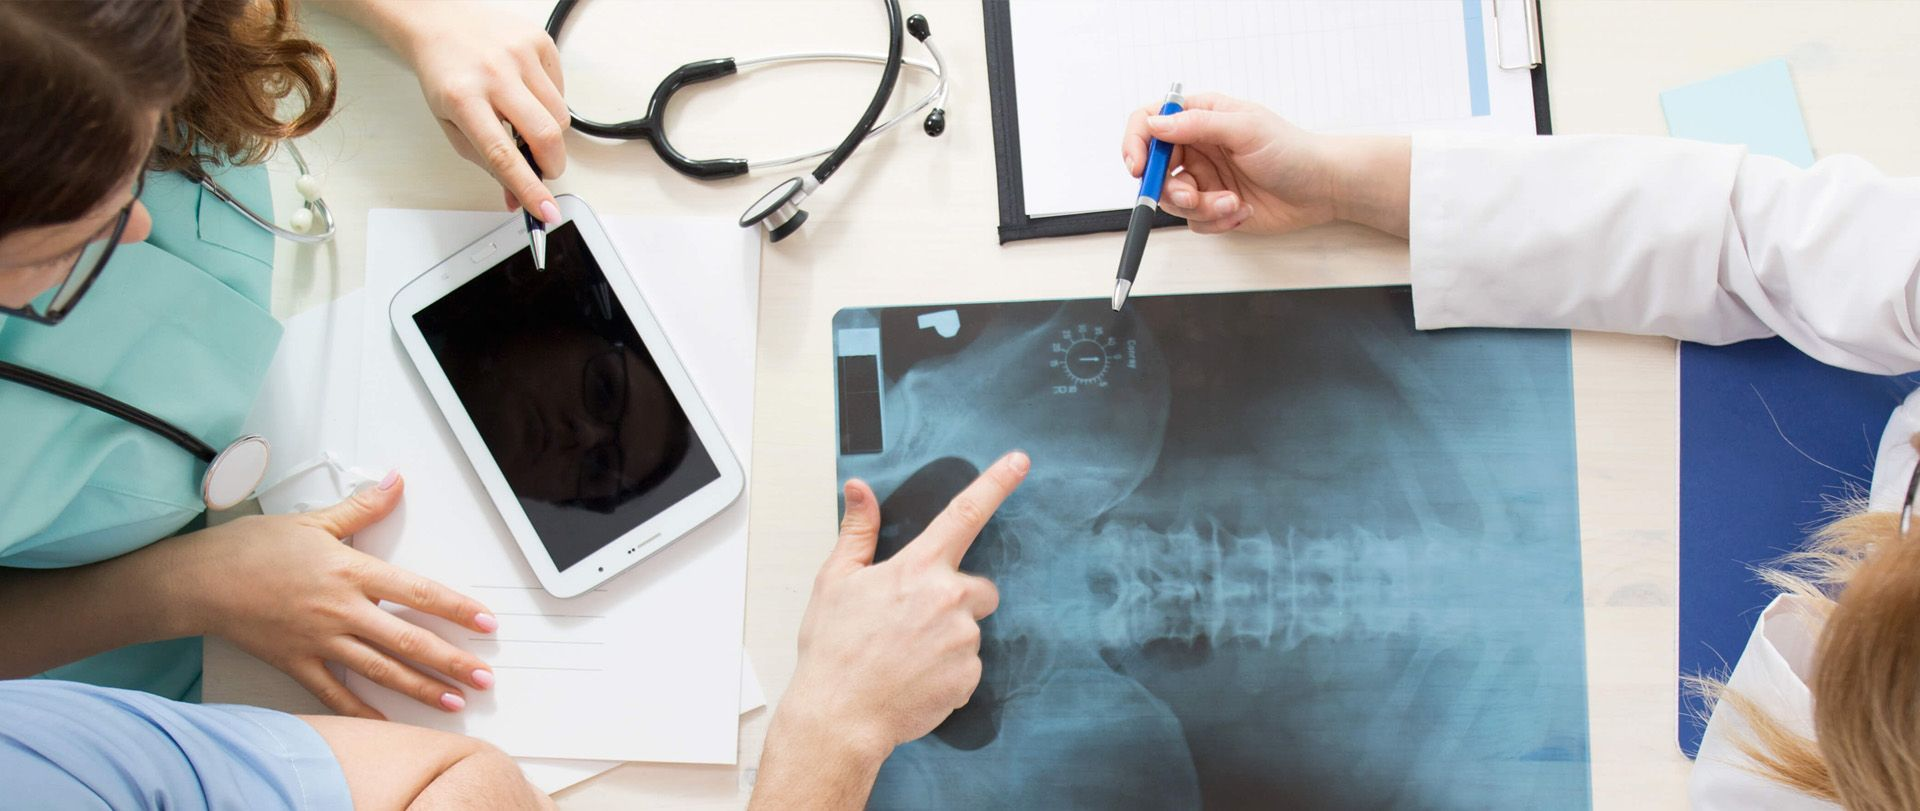 Looking for imaging investigations or Digital XRay Clinic